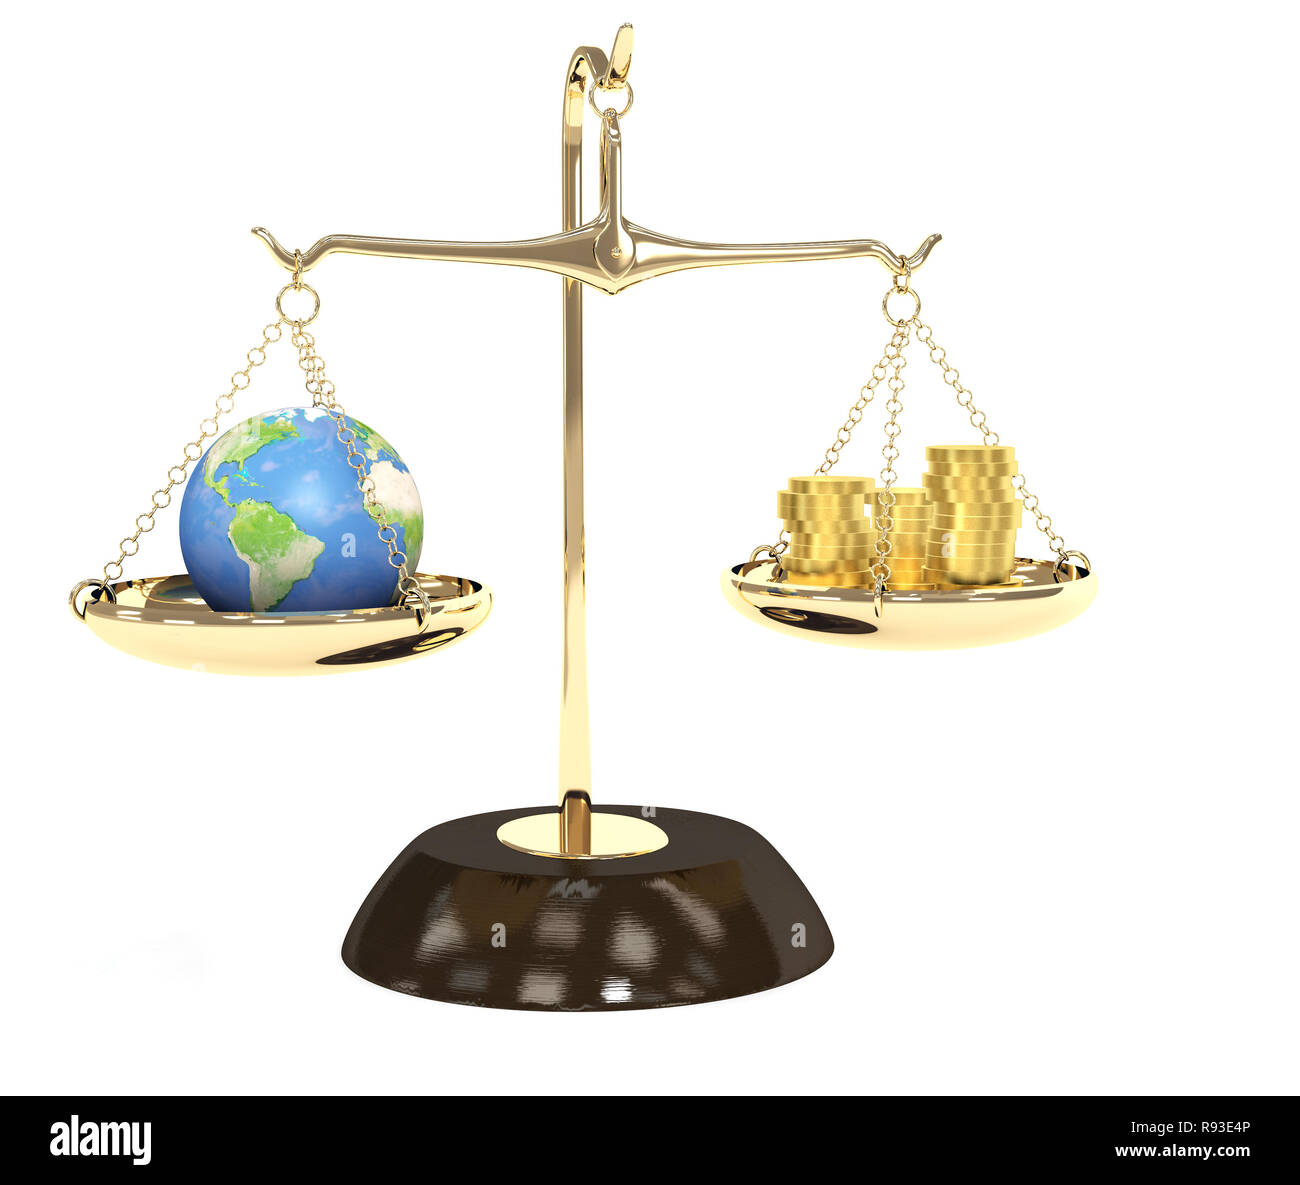 Concept - Earth and money on measurement scales - Stock Image